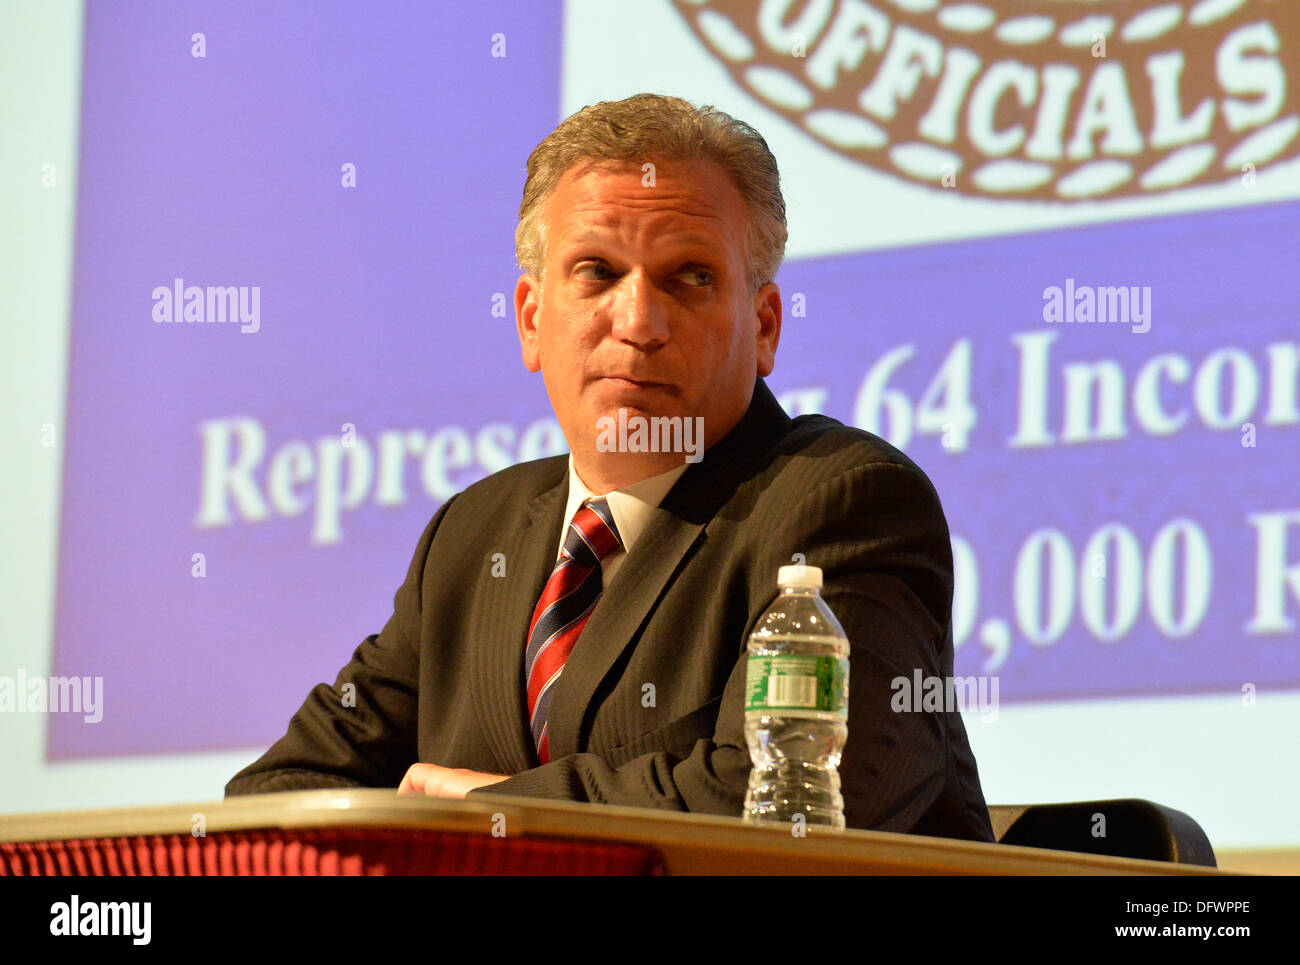 Old Westbury, New York, U.S. 8th October 2013. Republican EDWARD MANGANO, the Nassau County Executive, debates with former Nassau County Executive Suozzi n a debate hosted by the Nassau County Village Officials Association, representing 64 incorporated villages with 450,000 residents, as the opponents face a rematch in the 2013 November elections. Credit:  Ann E Parry/Alamy Live News - Stock Image